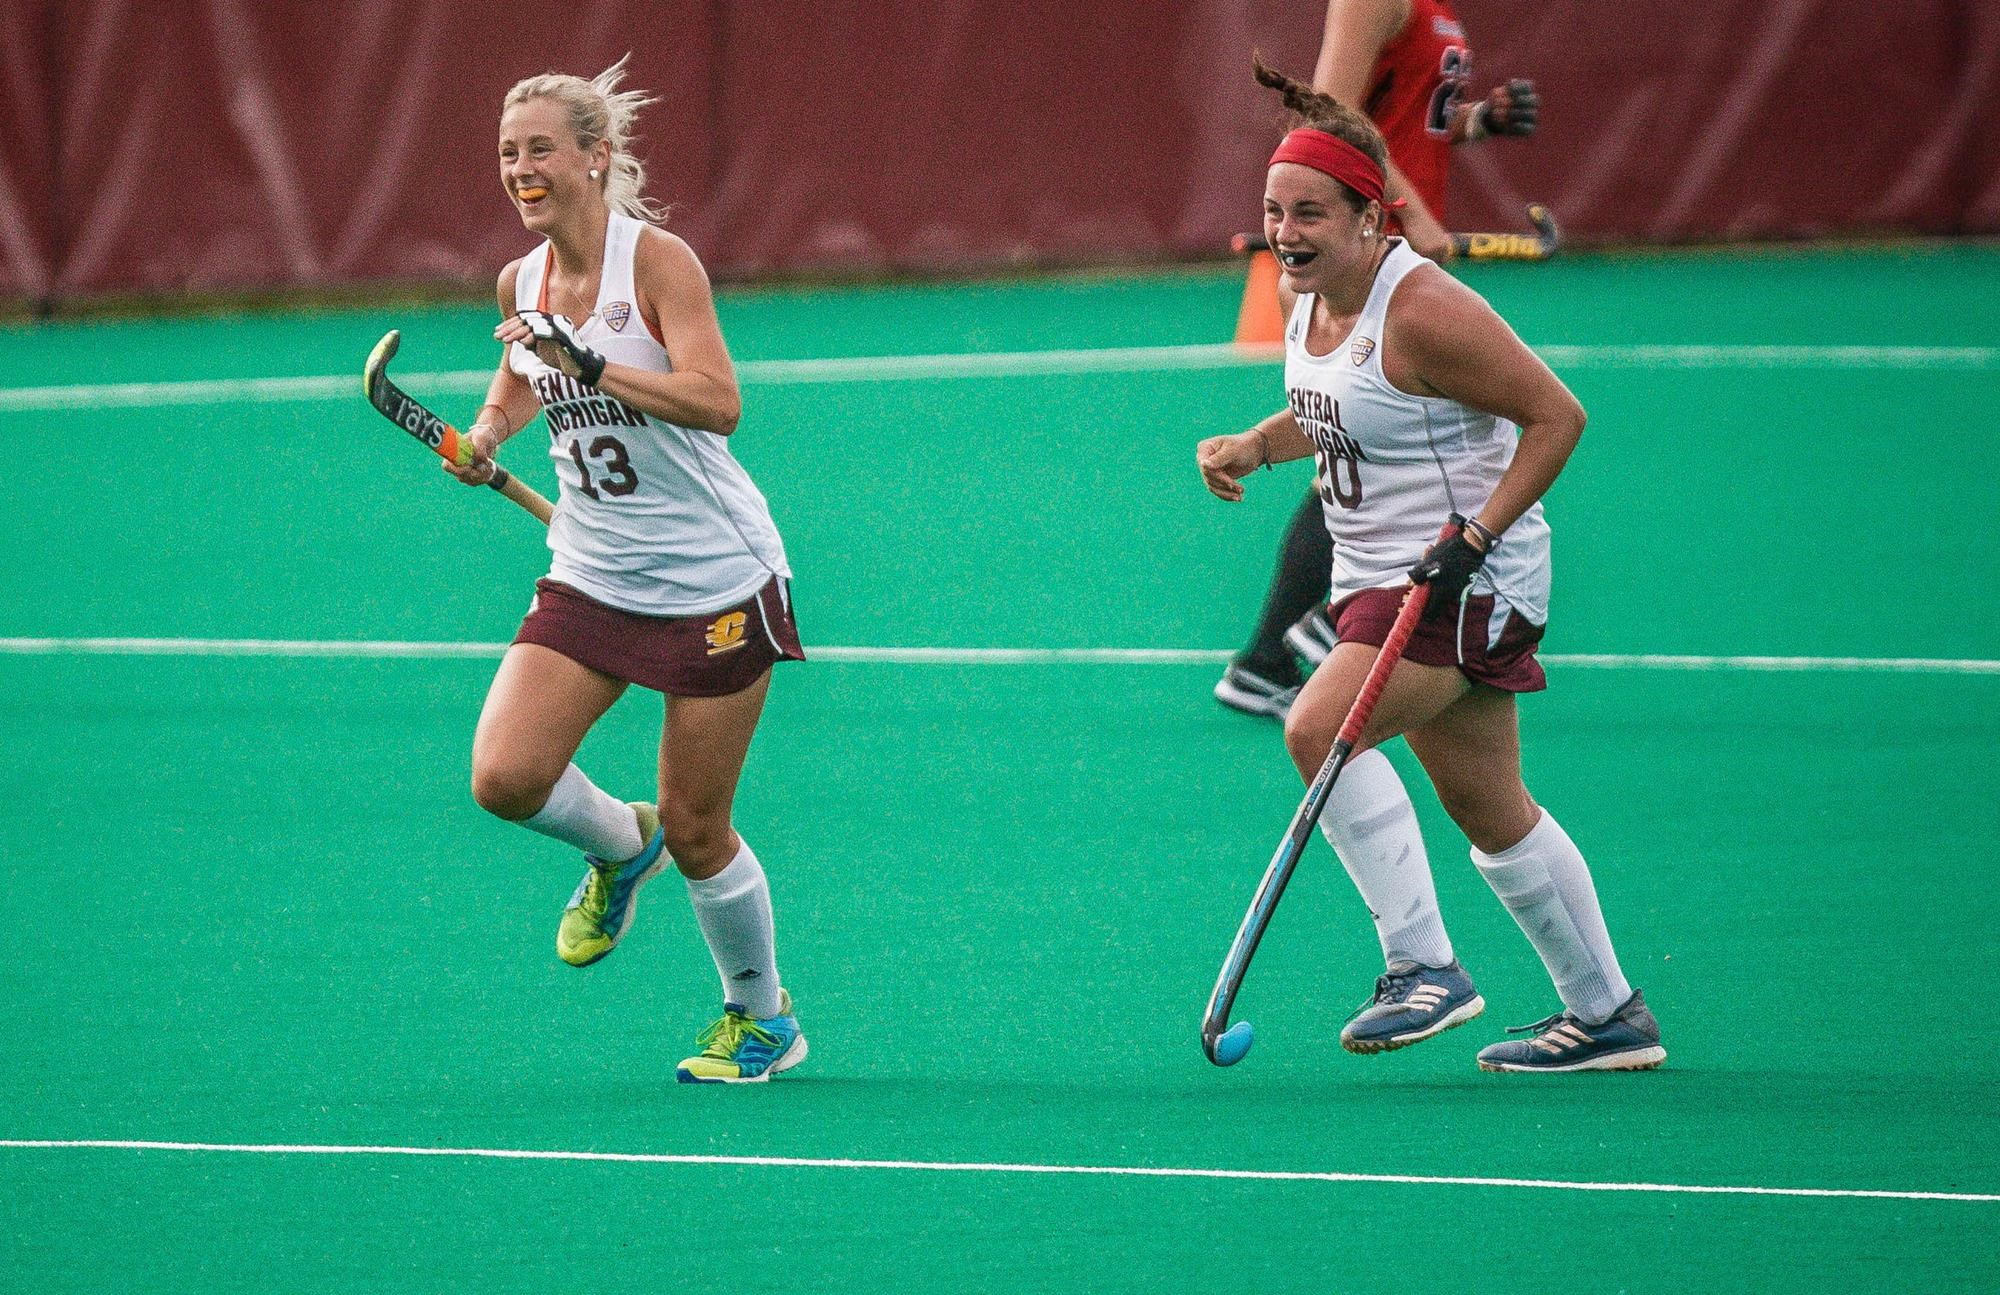 League Opener On Tap For Field Hockey - CMUCHIPPEWAS.COM - Official Athletic Site